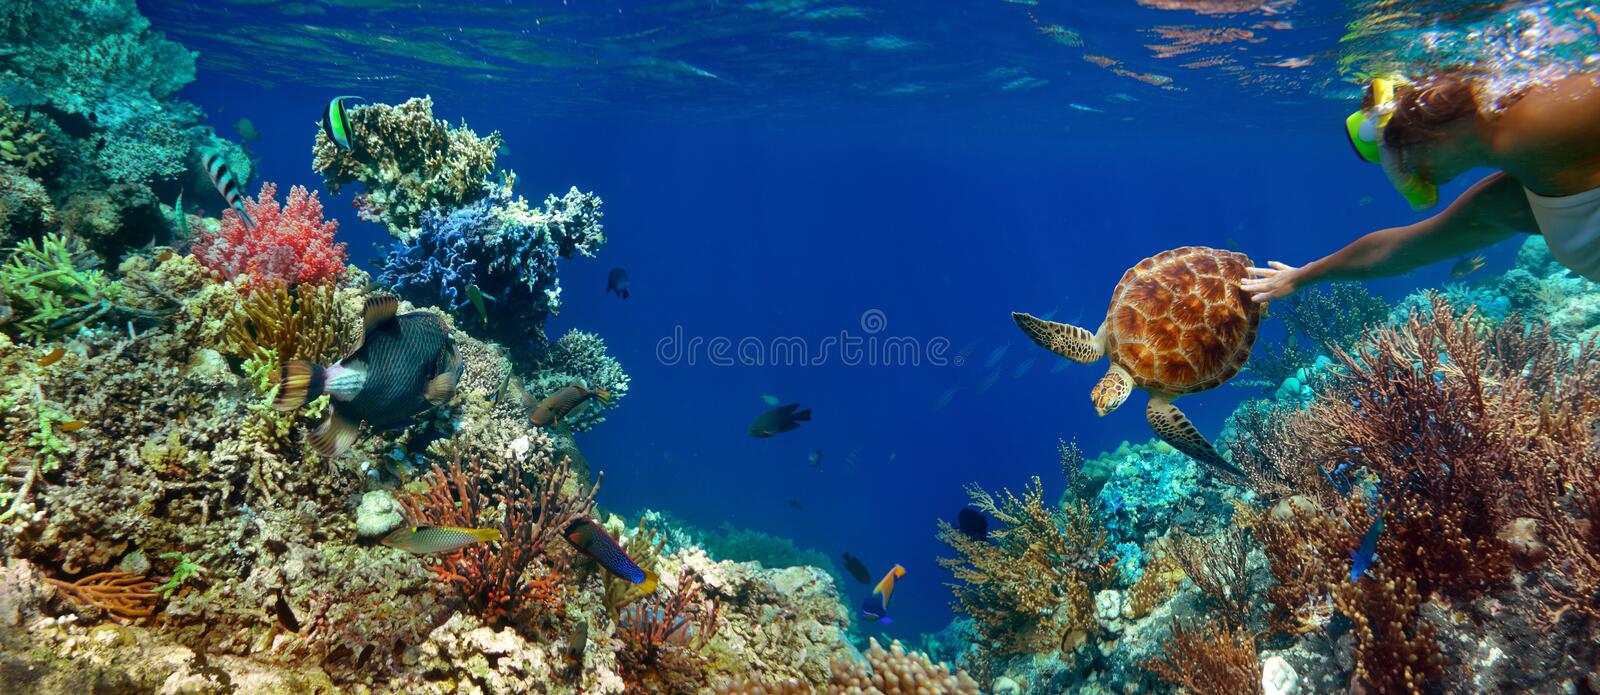 Underwater panorama in a coral reef with colorful sealife stock photo